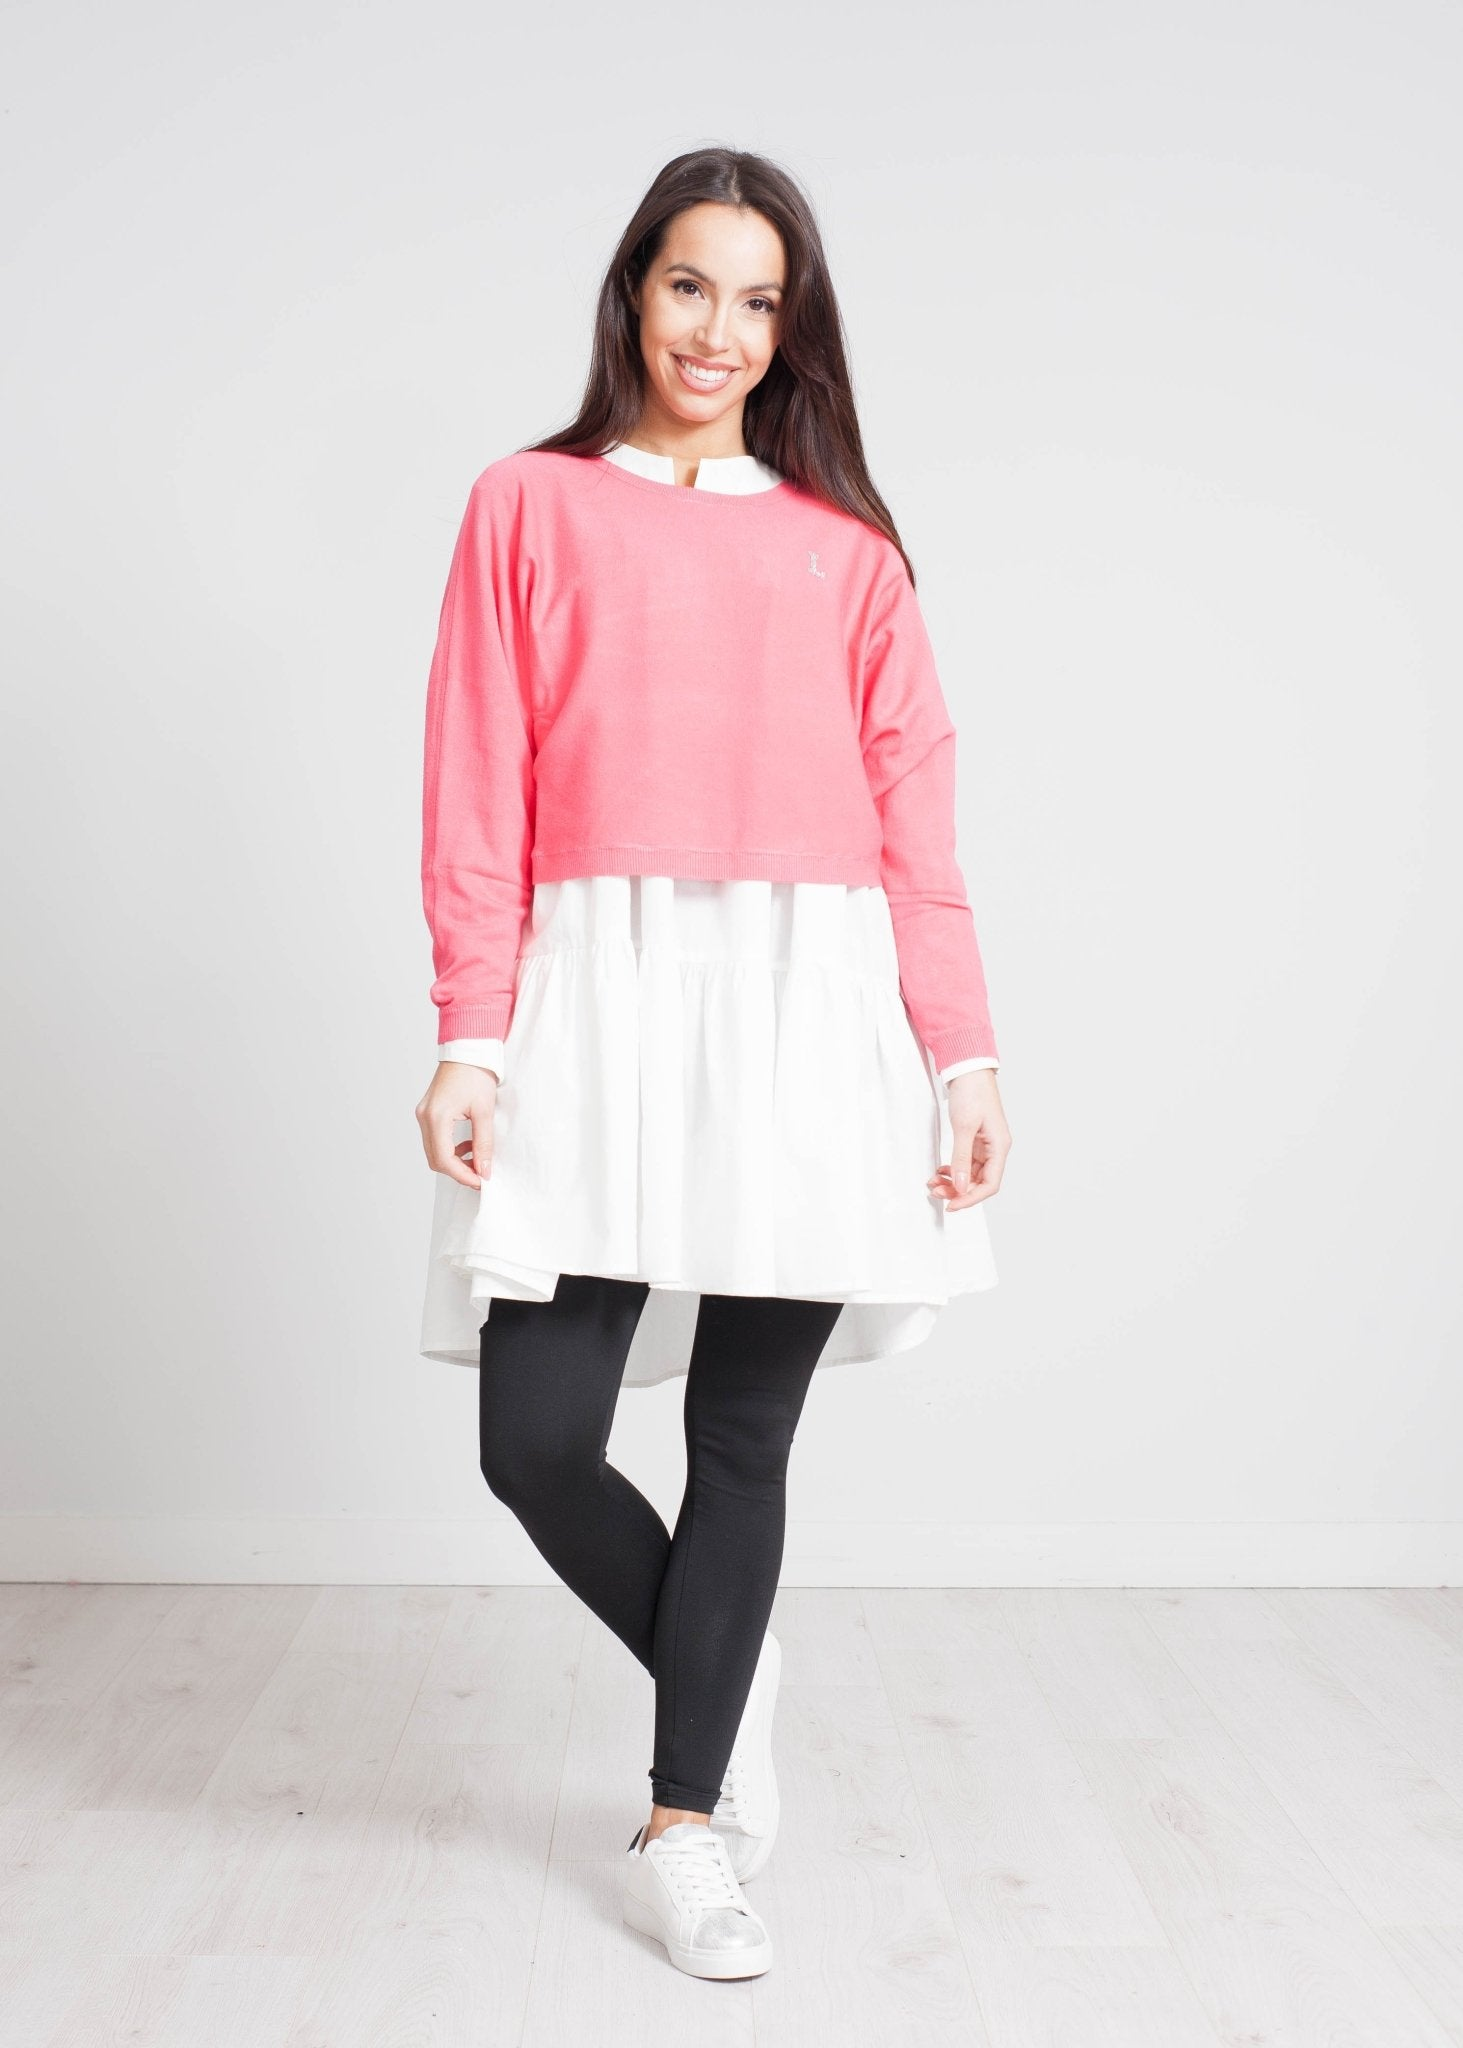 Becca Embellished Knit In Hot Pink - The Walk in Wardrobe